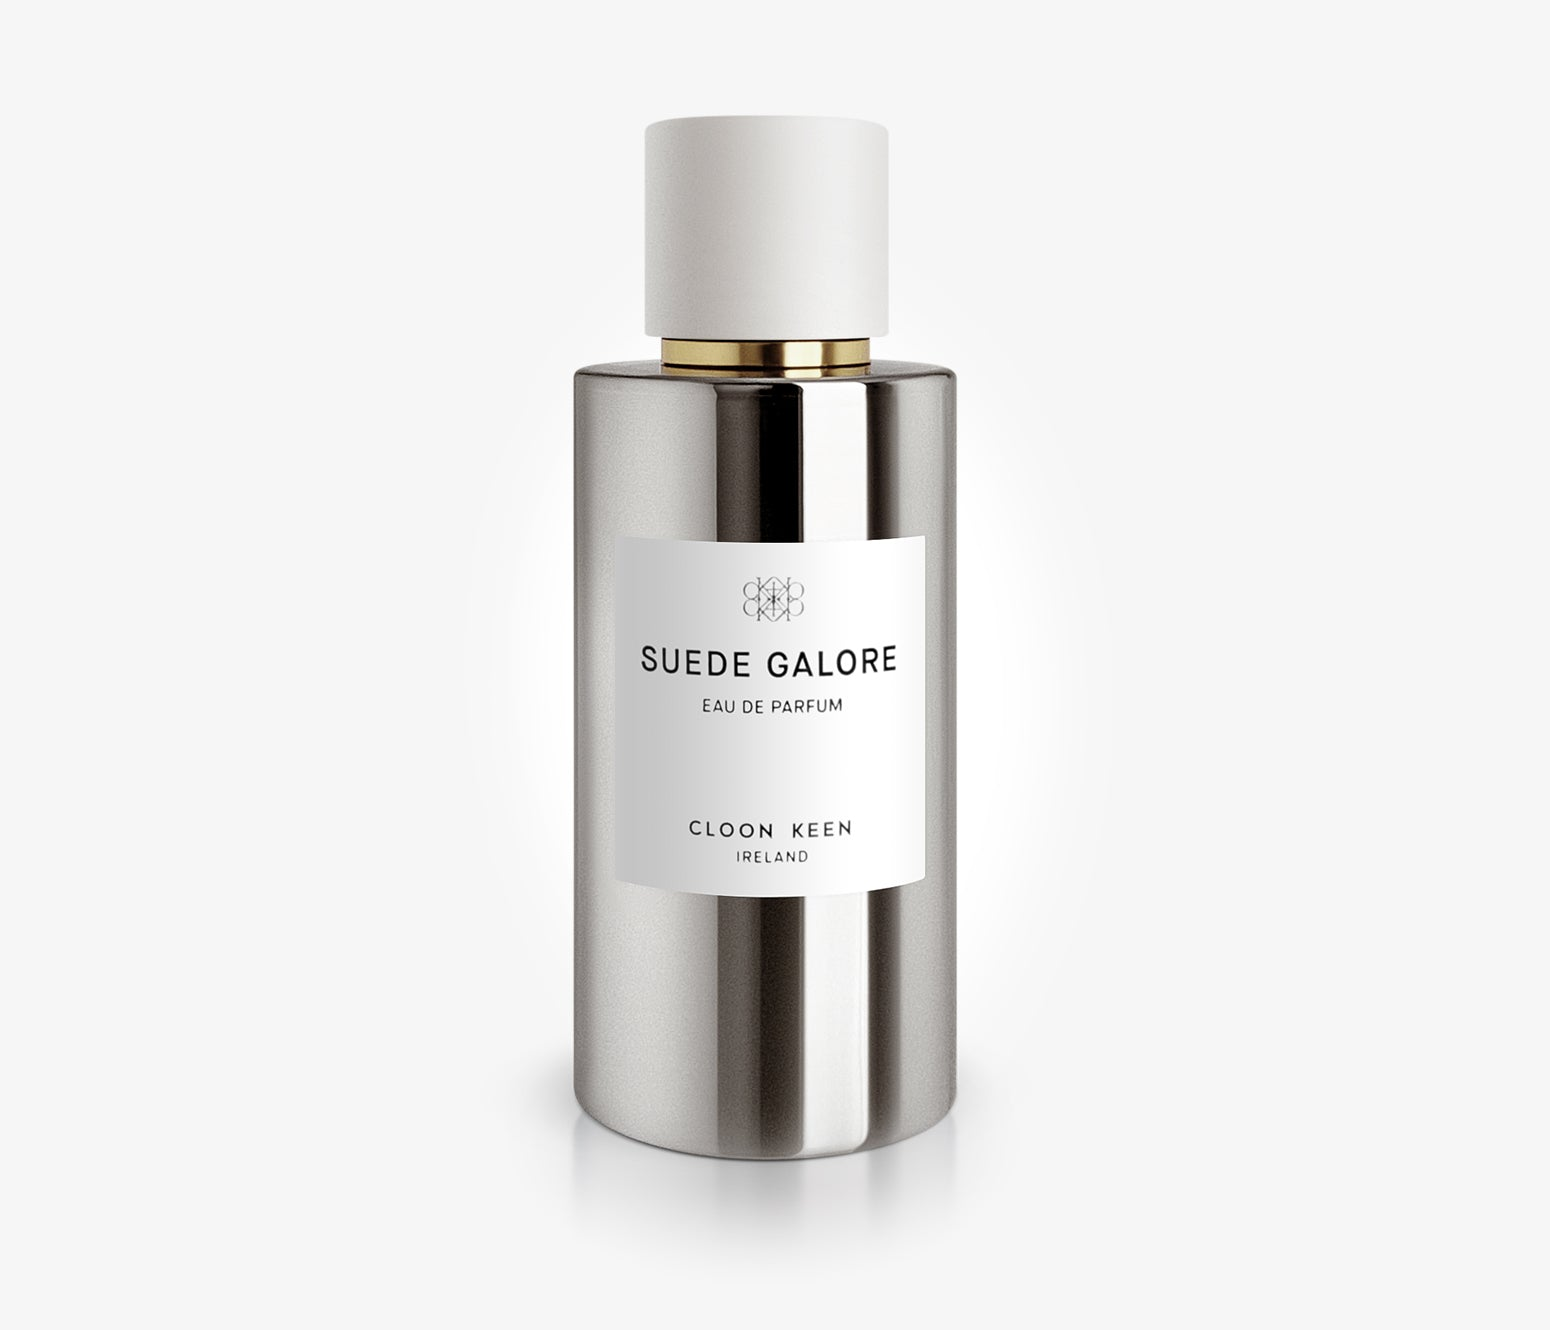 Cloon Keen - Suede Galore - 100ml - JUU001 - product image - Fragrance - Les Senteurs